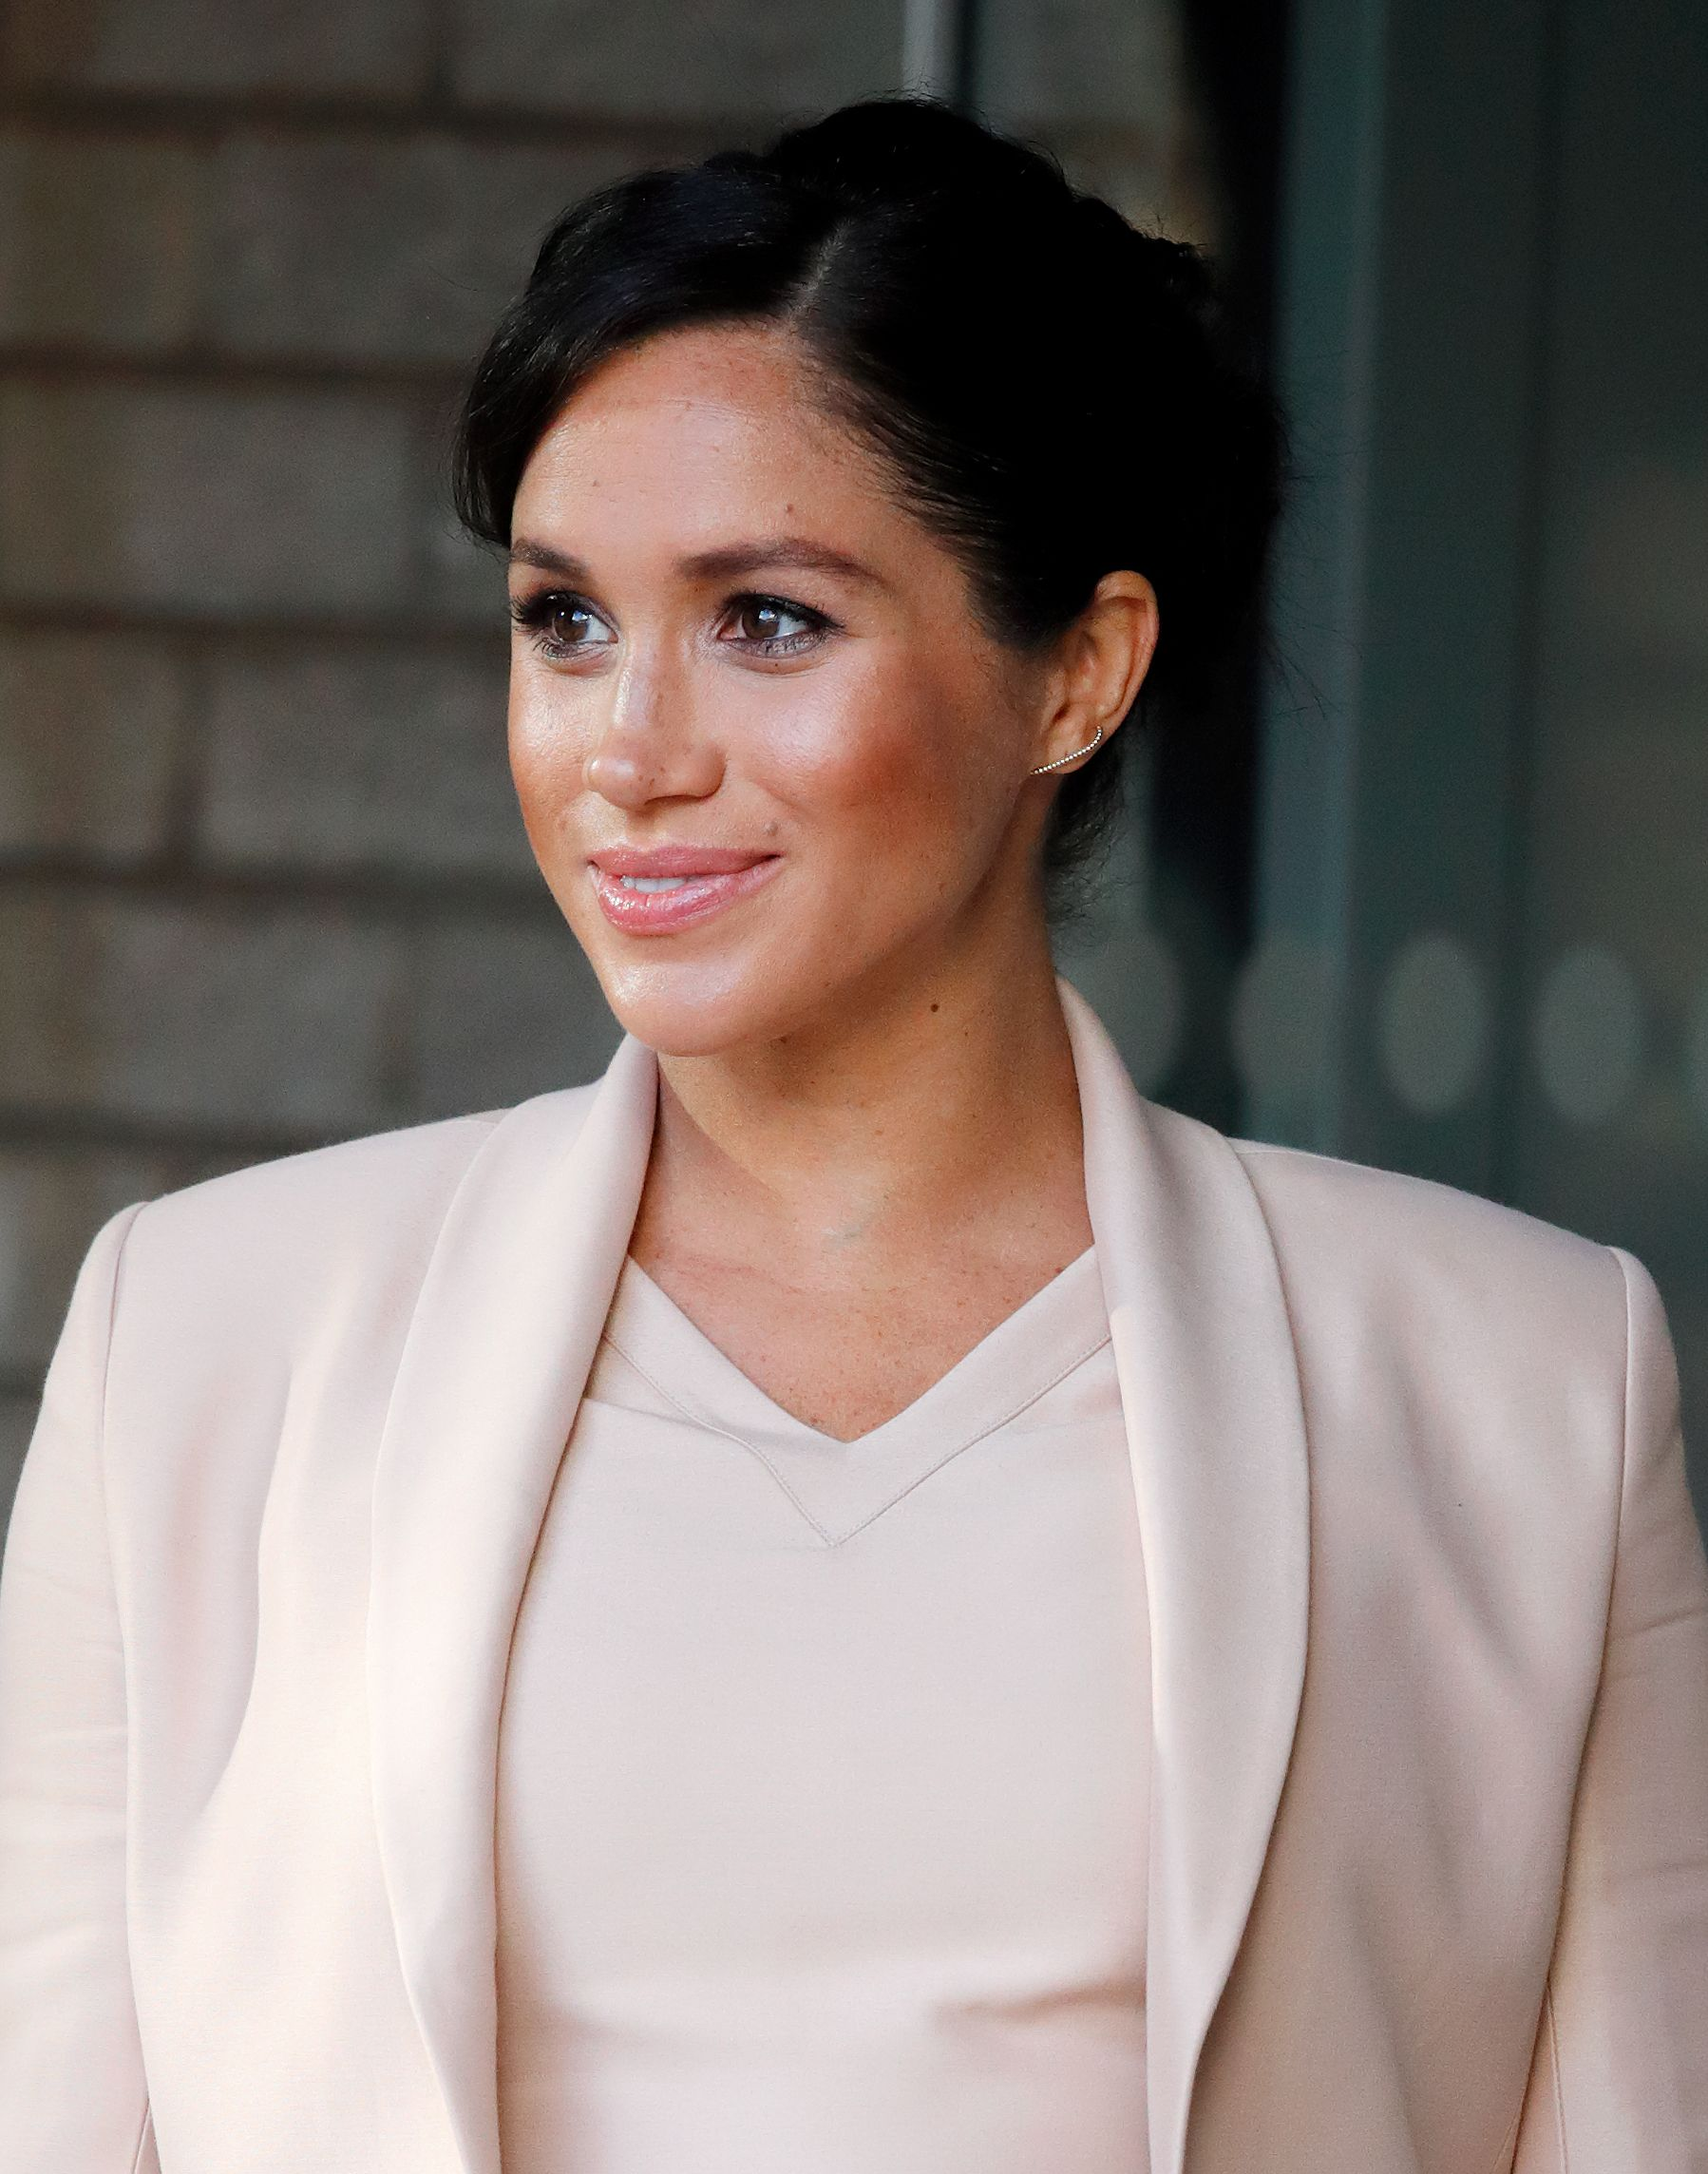 Meghan Markle's Half-Brother Is Out Here Trying to Get an Invite to Archie's Royal Christening